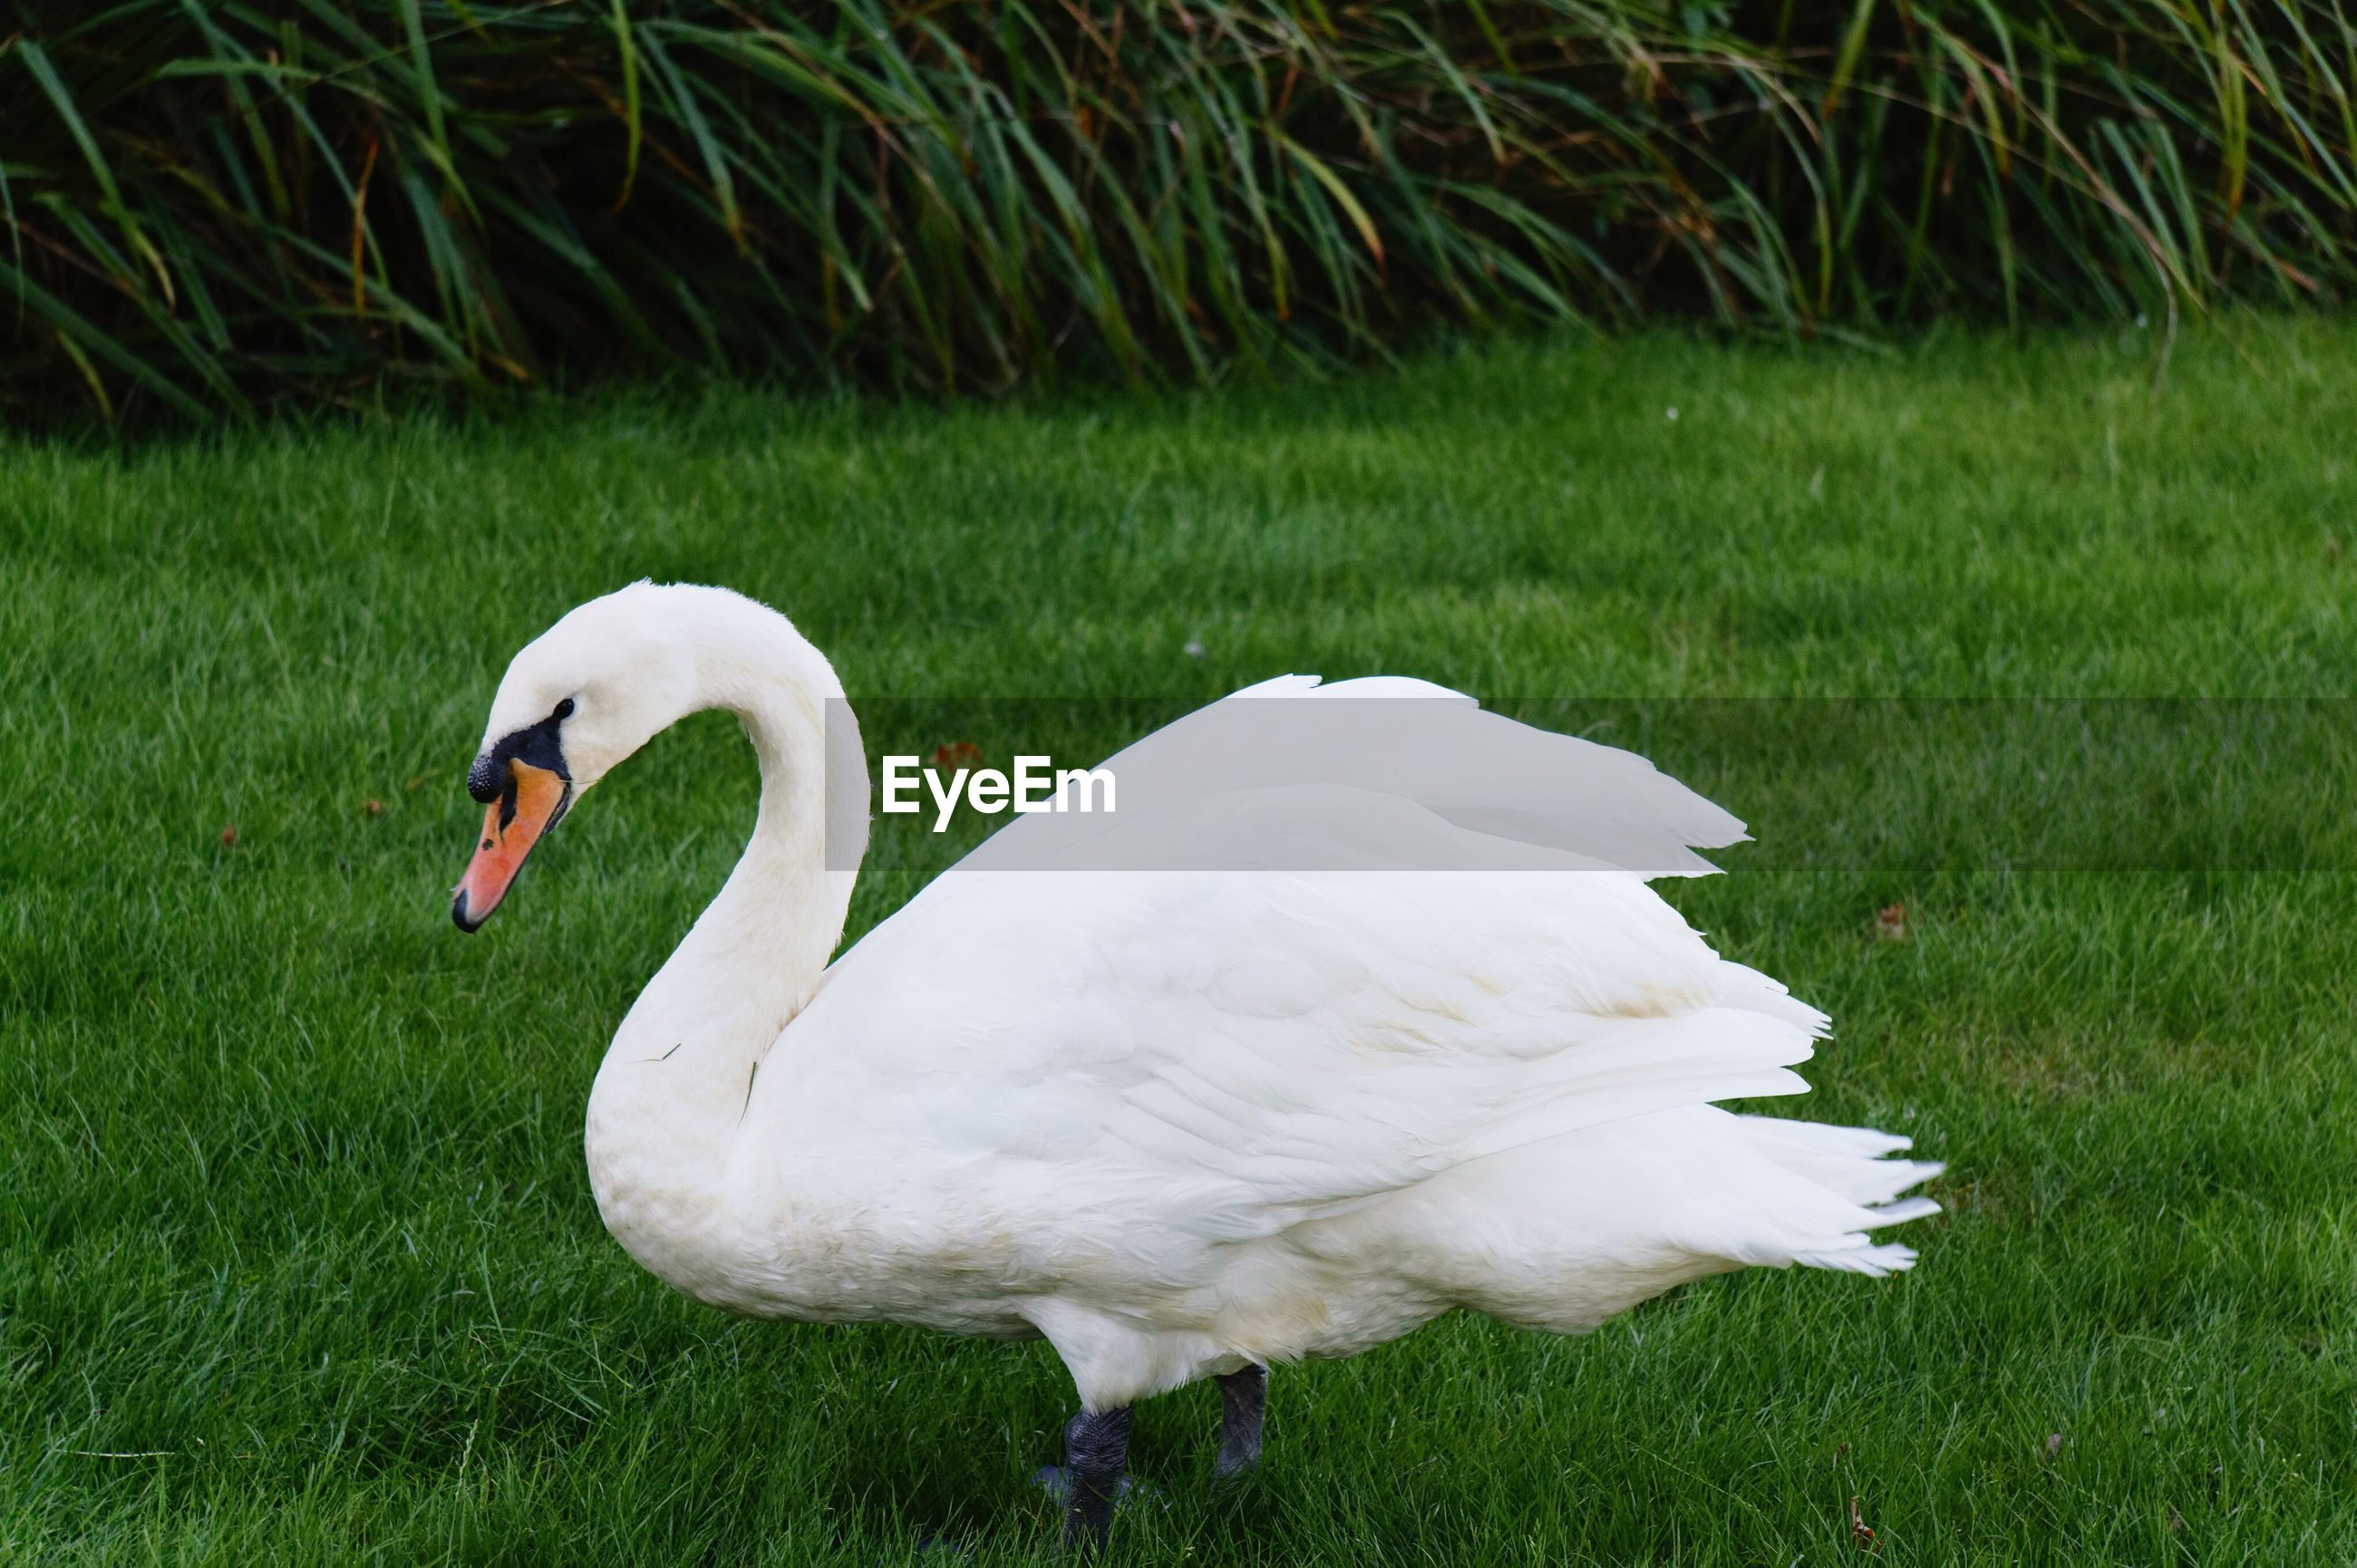 WHITE SWAN ON GRASS